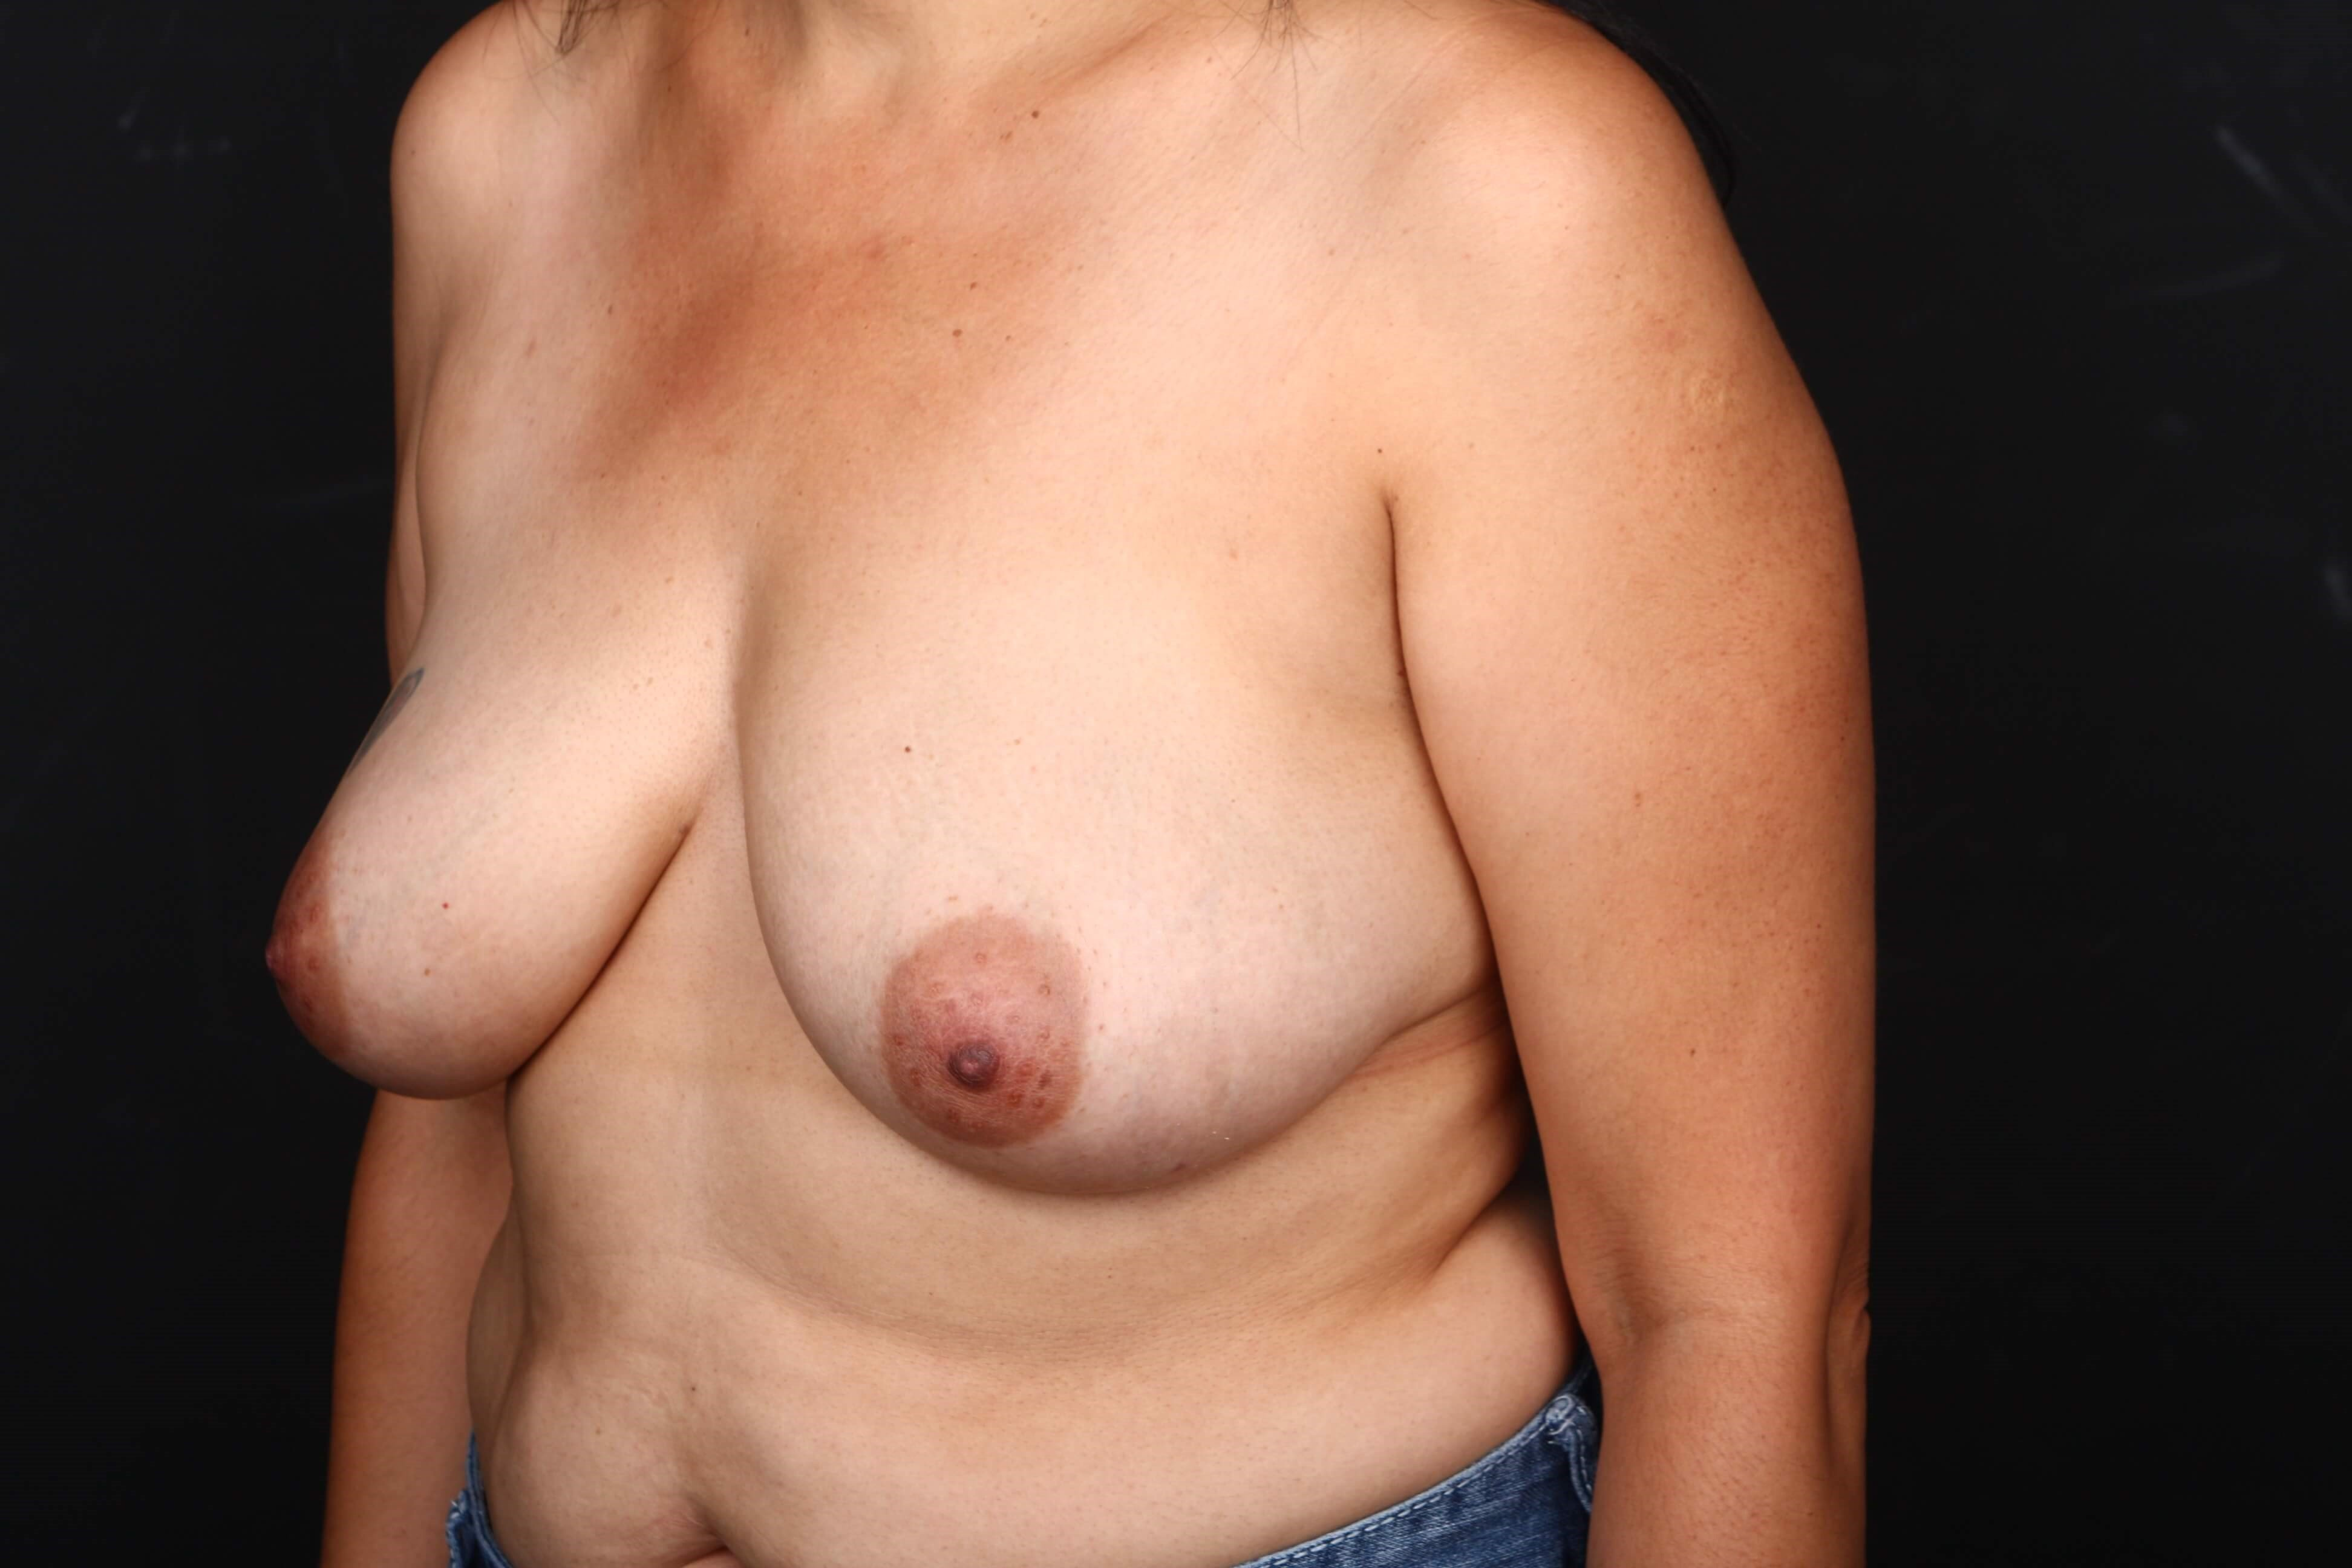 52 y/o breast reconstruction Before side view